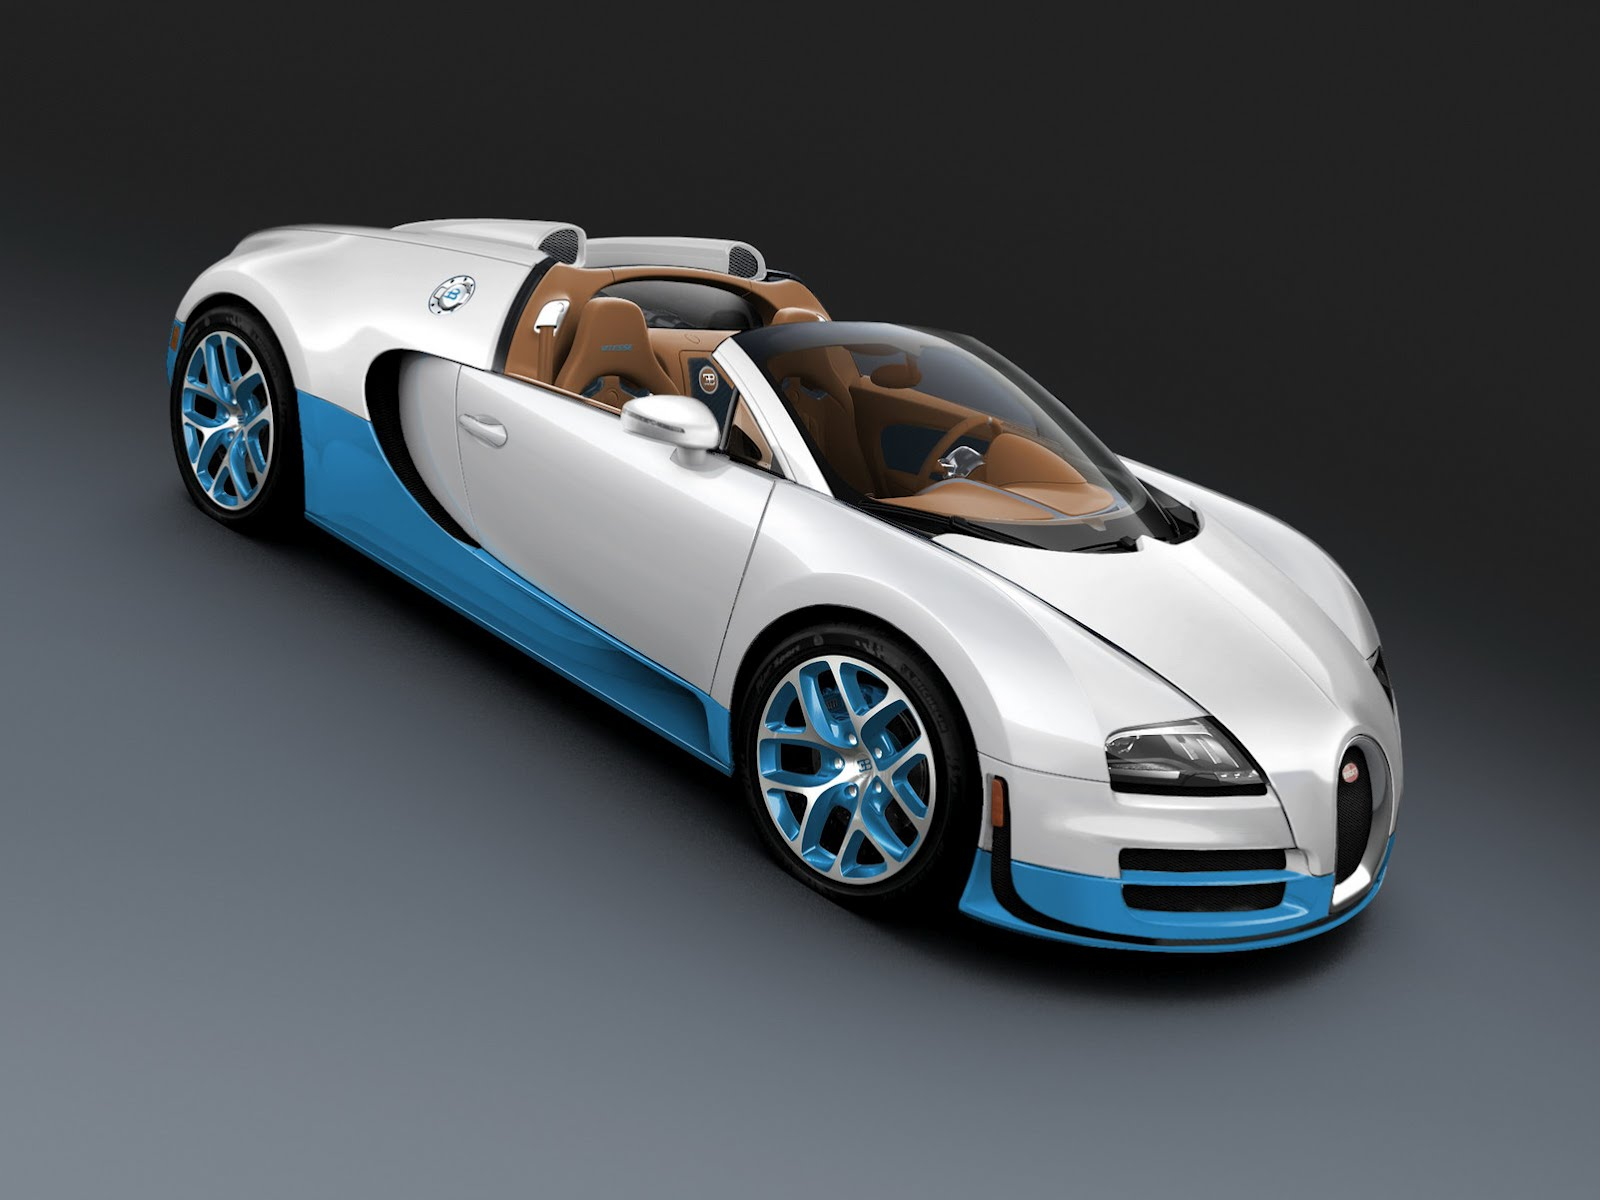 bugatti veyron grand sport vitesse special edition unveiled autoevolution. Black Bedroom Furniture Sets. Home Design Ideas